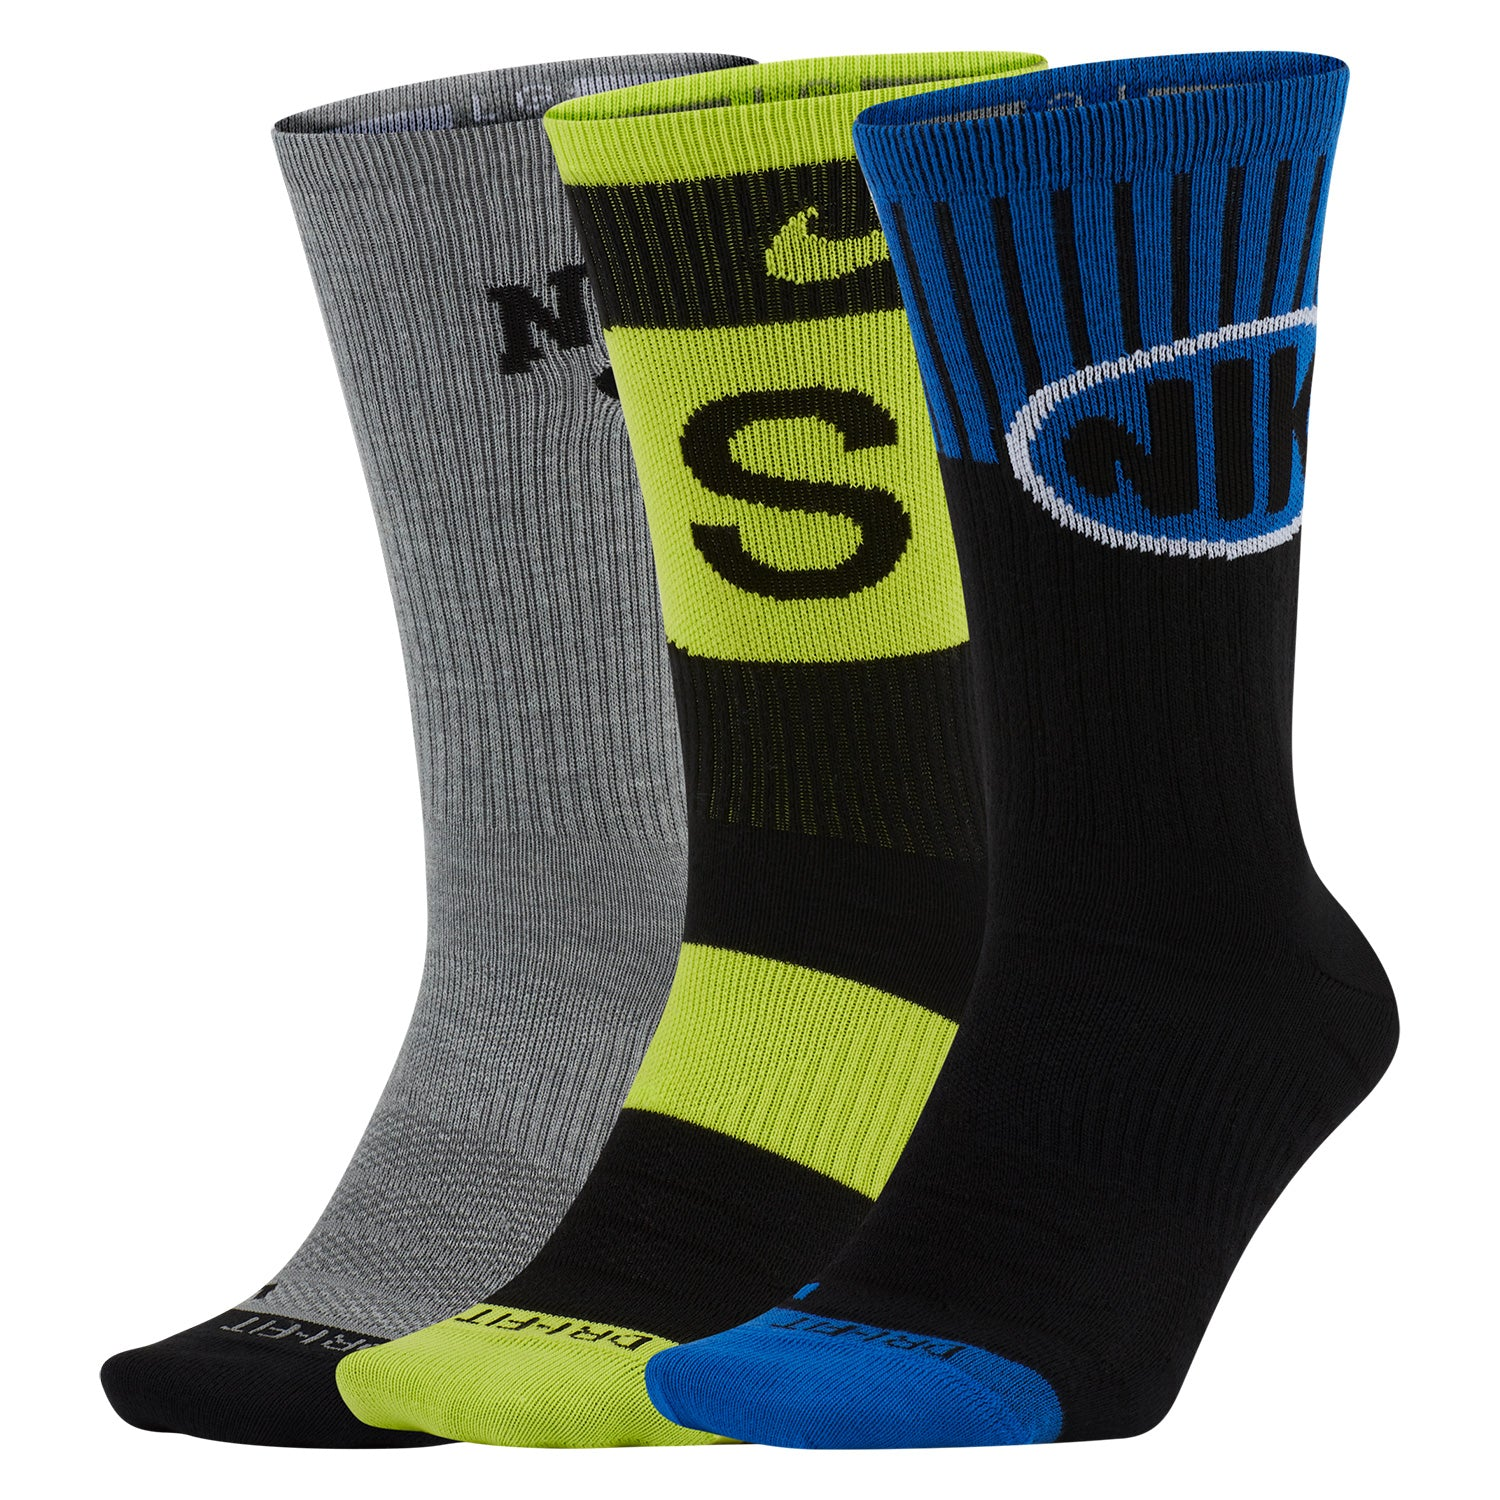 Nike SB Everyday Max Lightweight Crew 3 pack Socks - Multi Colour